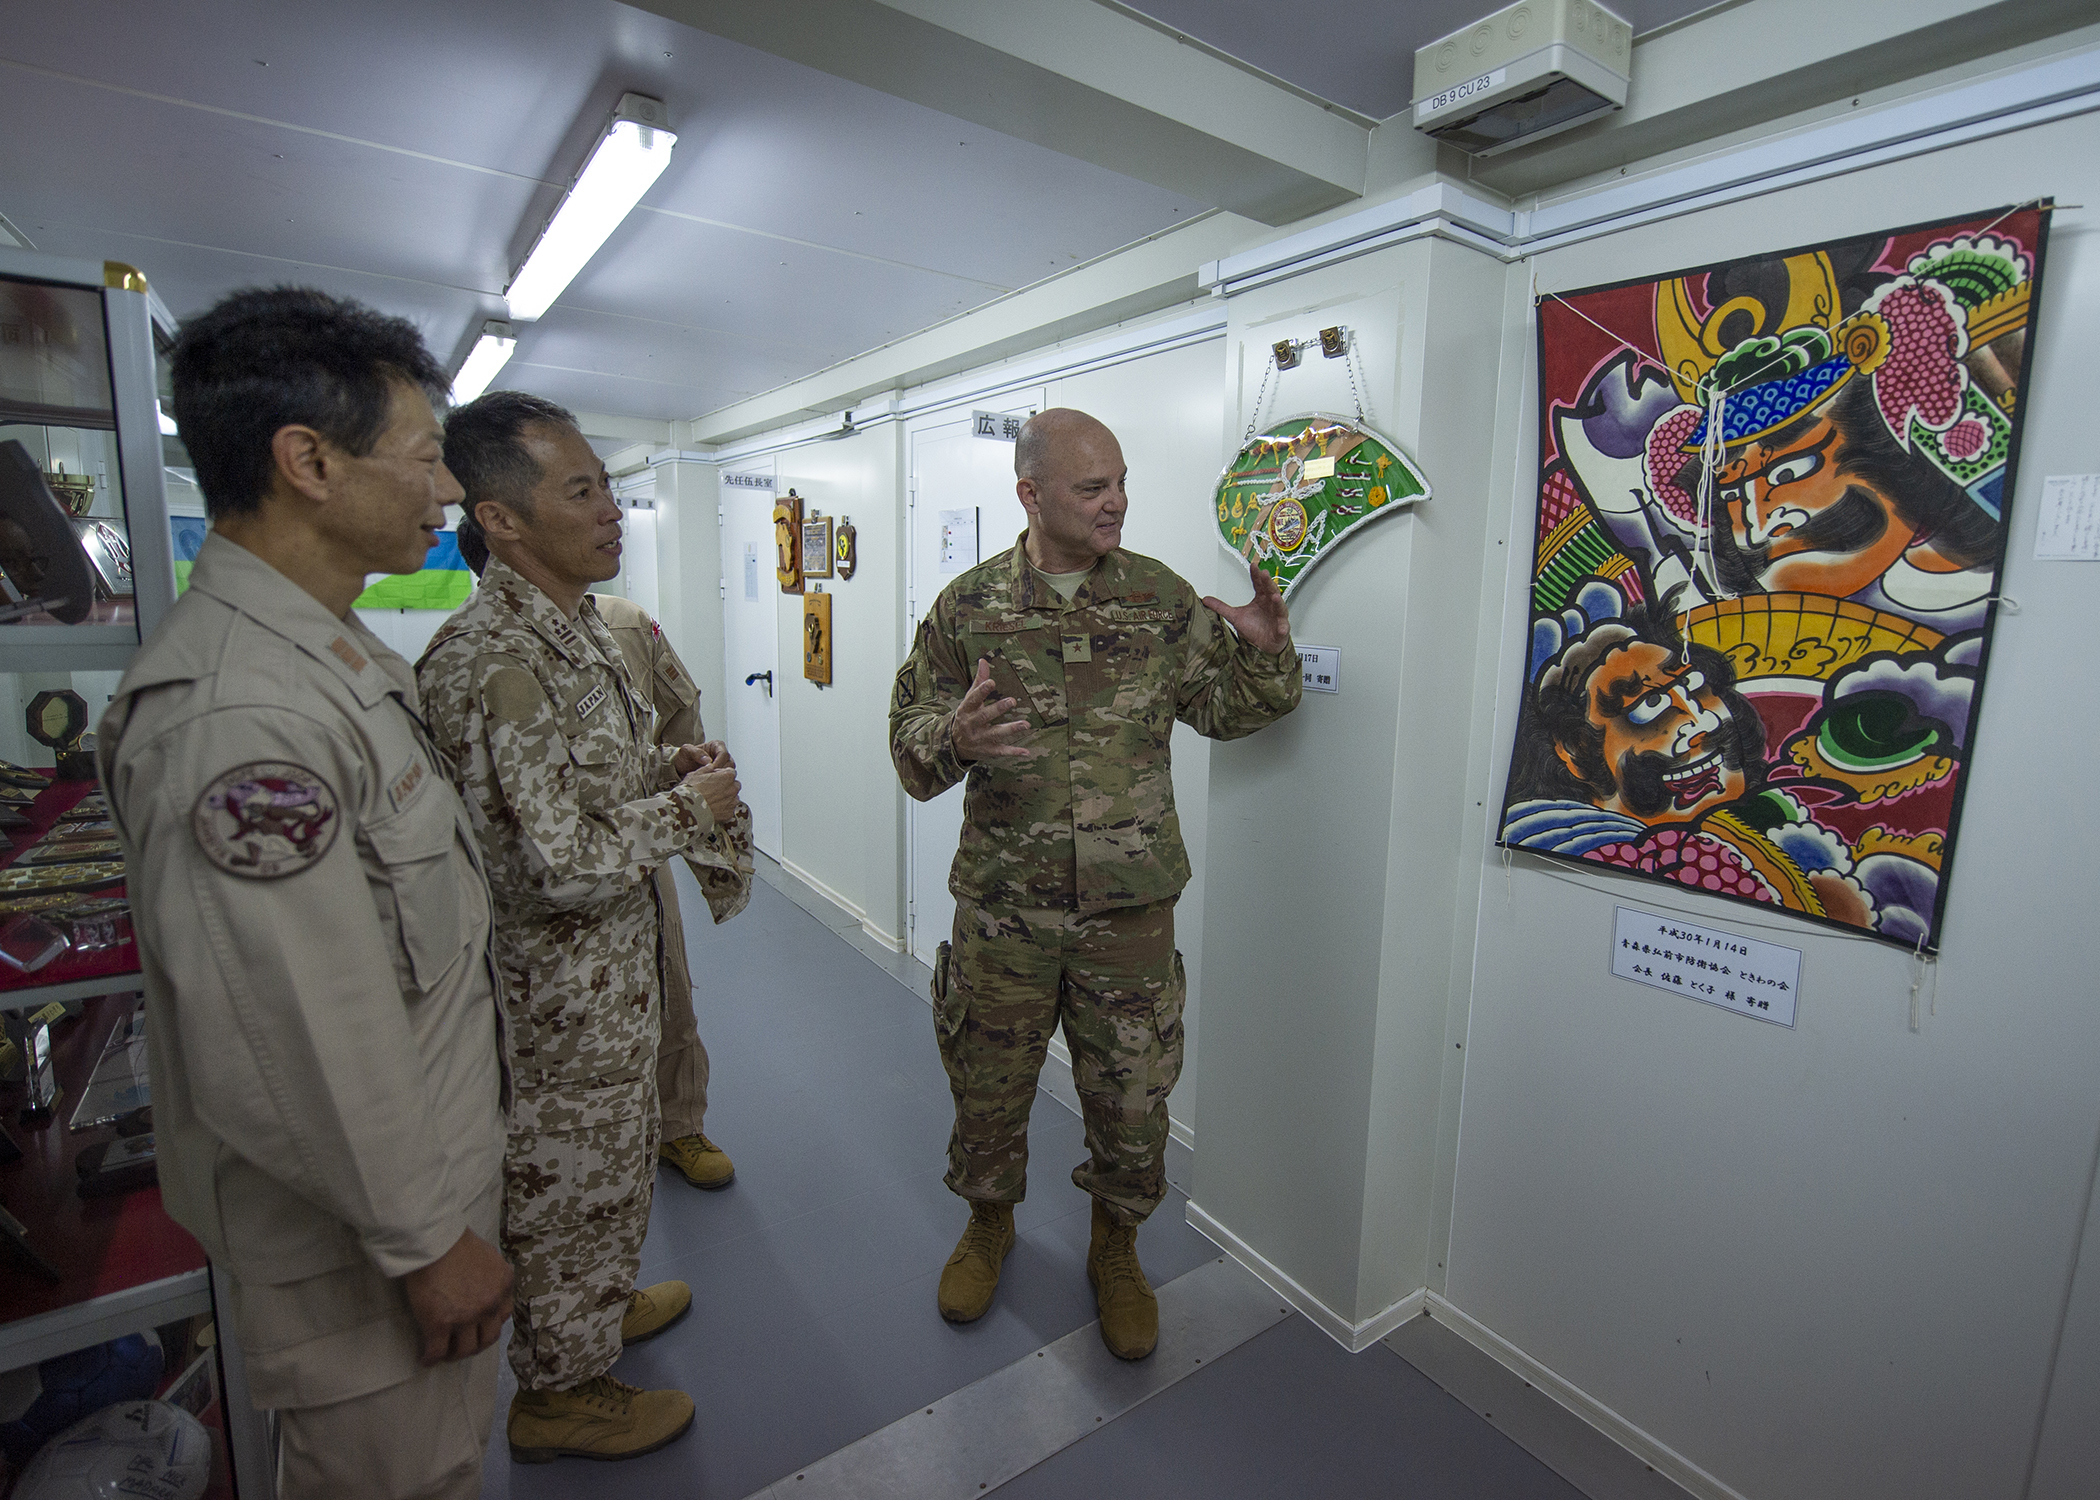 U.S. Air Force Brig. Gen. James R. Kriesel, deputy commanding general, Combined Joint Task Force-Horn of Africa (CJTF-HOA), compliments art hung in the Japanese Maritime Self Defense Force (JMSDF) headquarters while meeting with the coalition partners during a familiarization meet and greet March 4, 2019, in Djibouti. The meeting served as an opportunity for CJTF-HOA leadership to gain a better perspective of the JMSDF mission. (U.S. Air Force photo by Tech. Sgt. Shawn Nickel)